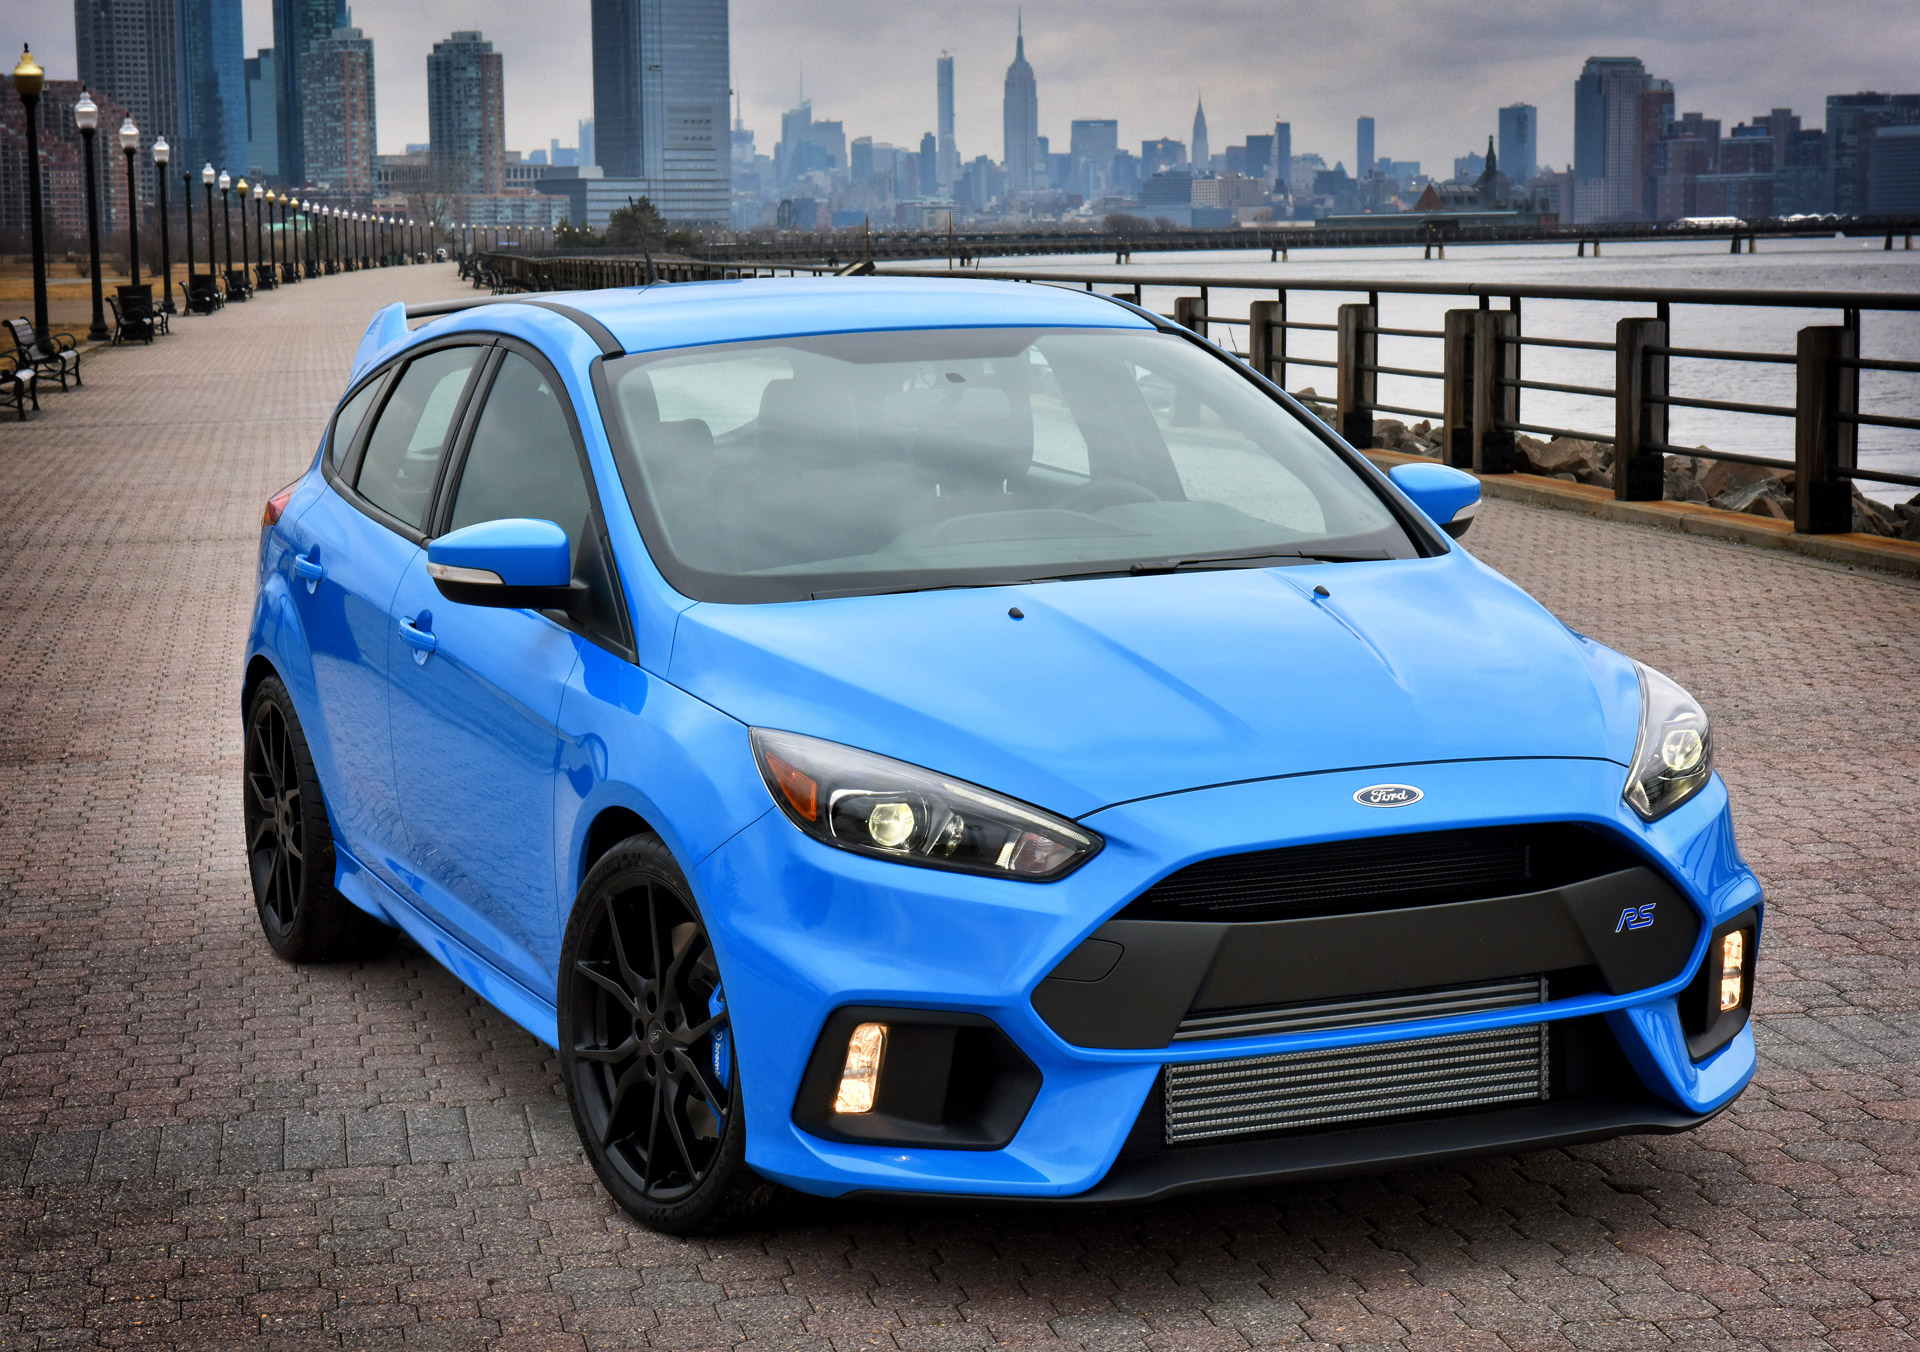 autoblog packs into horsepower the rs along ford hennessey focus ride price